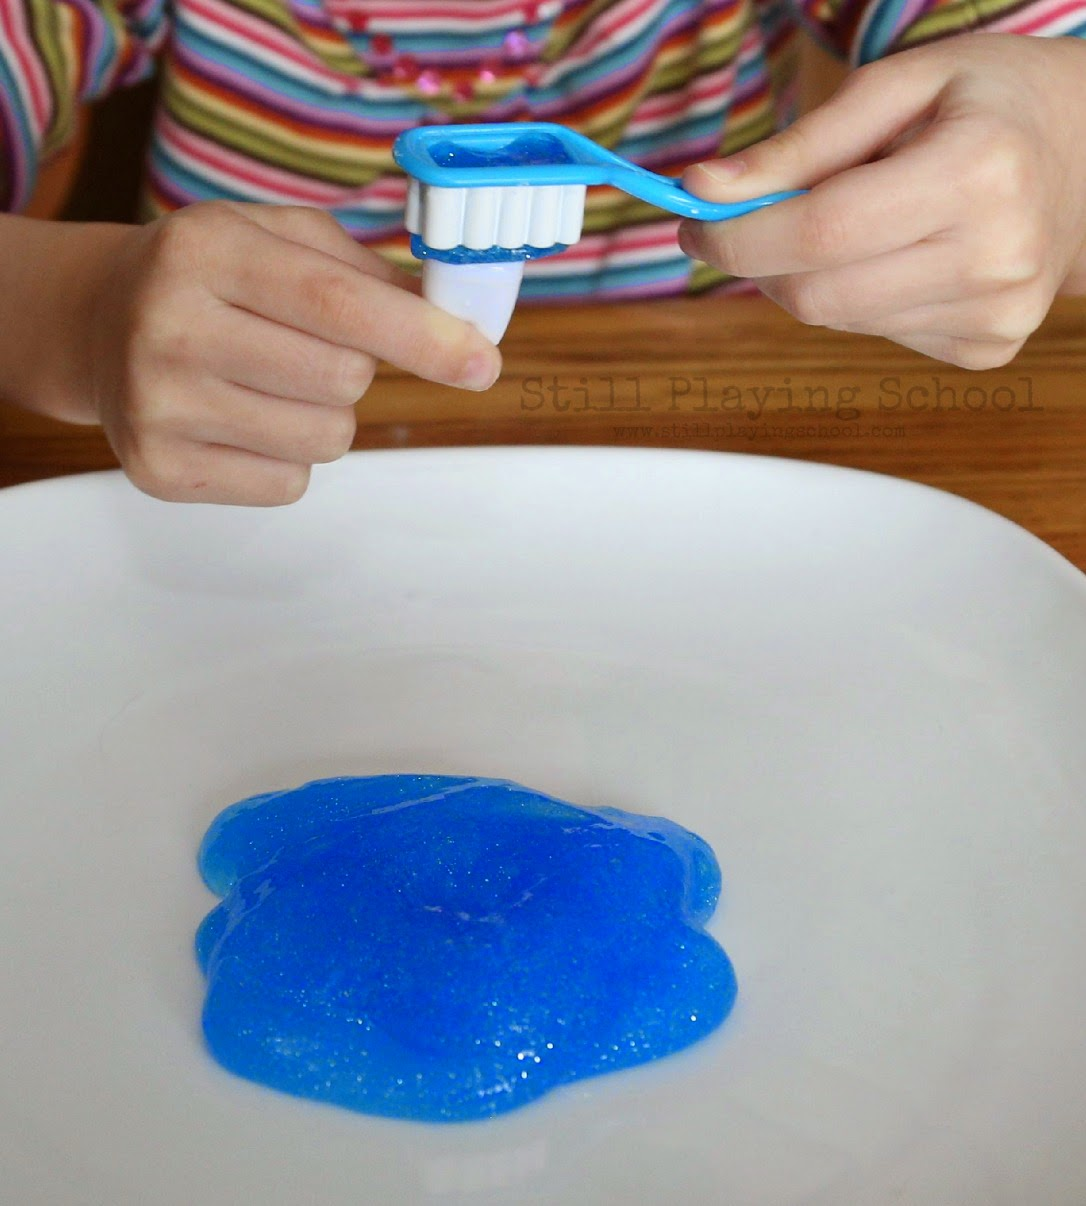 Toothpaste slime for dental health month still playing school our preschooler is interested in loose teeth since she has a few wiggly already and the tooth fairy is visiting her friends she pulled the pretend teeth ccuart Images